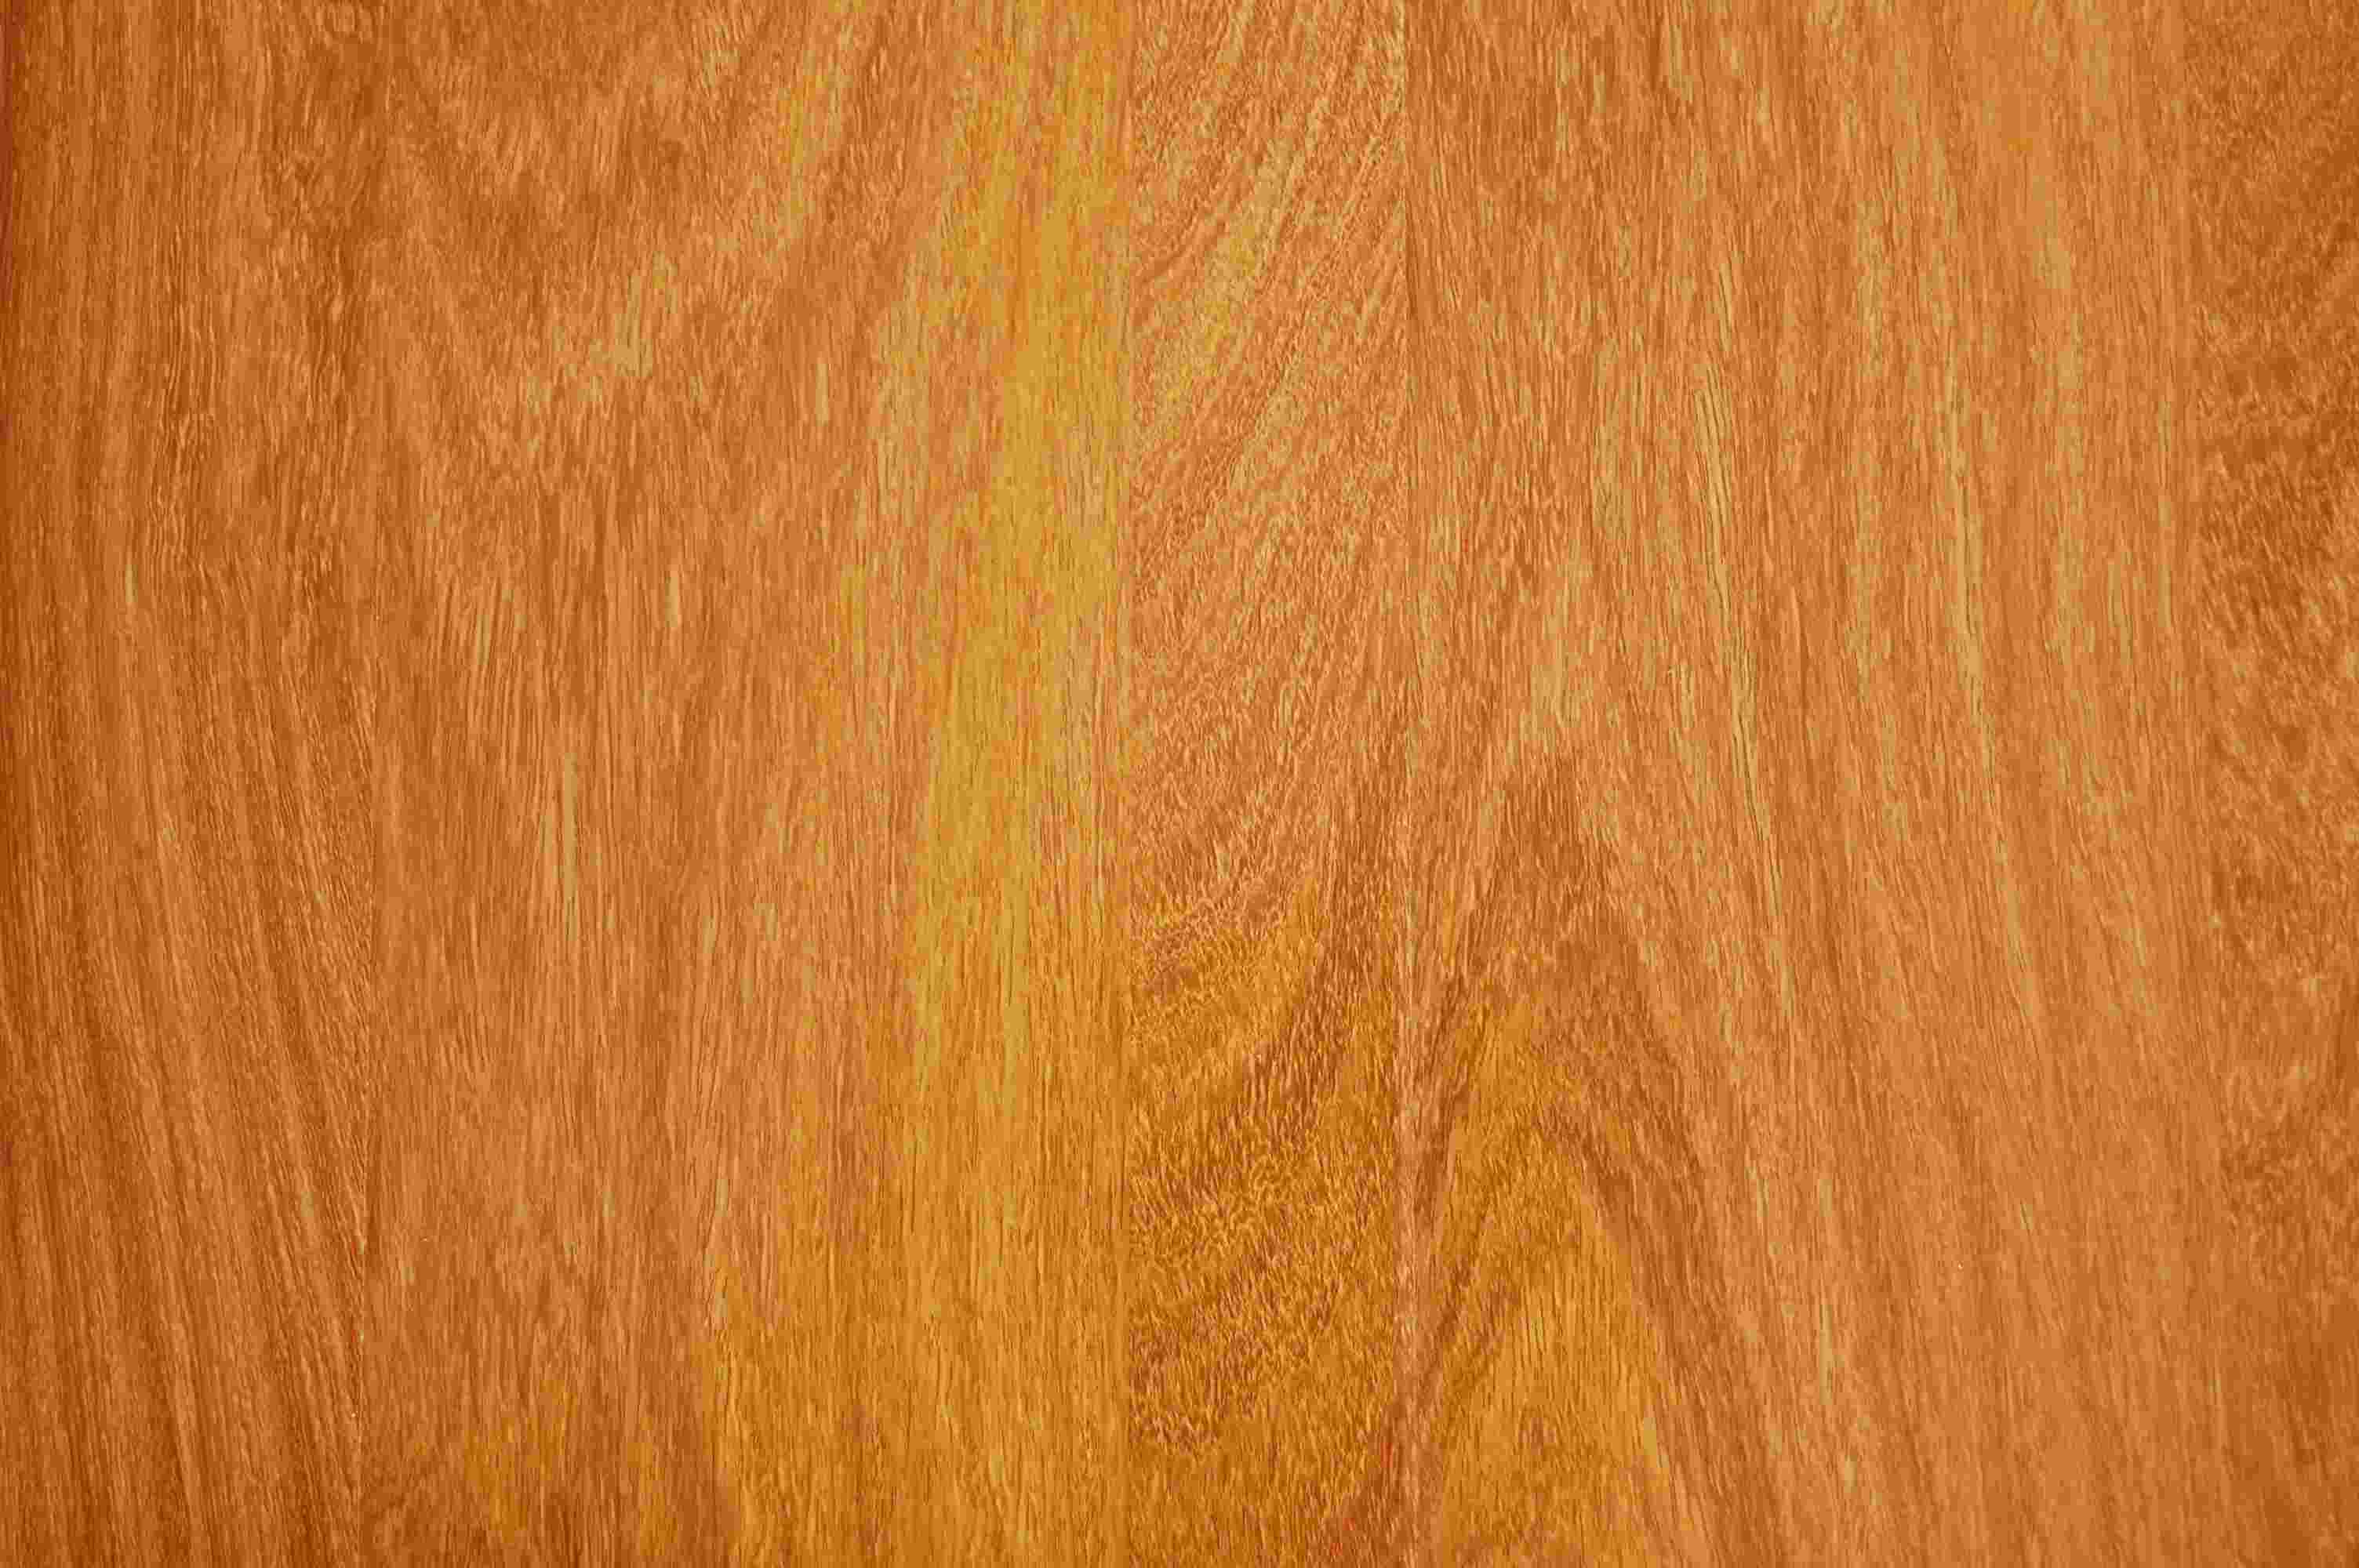 Glueless Laminate Installation Instructions Wood Designs